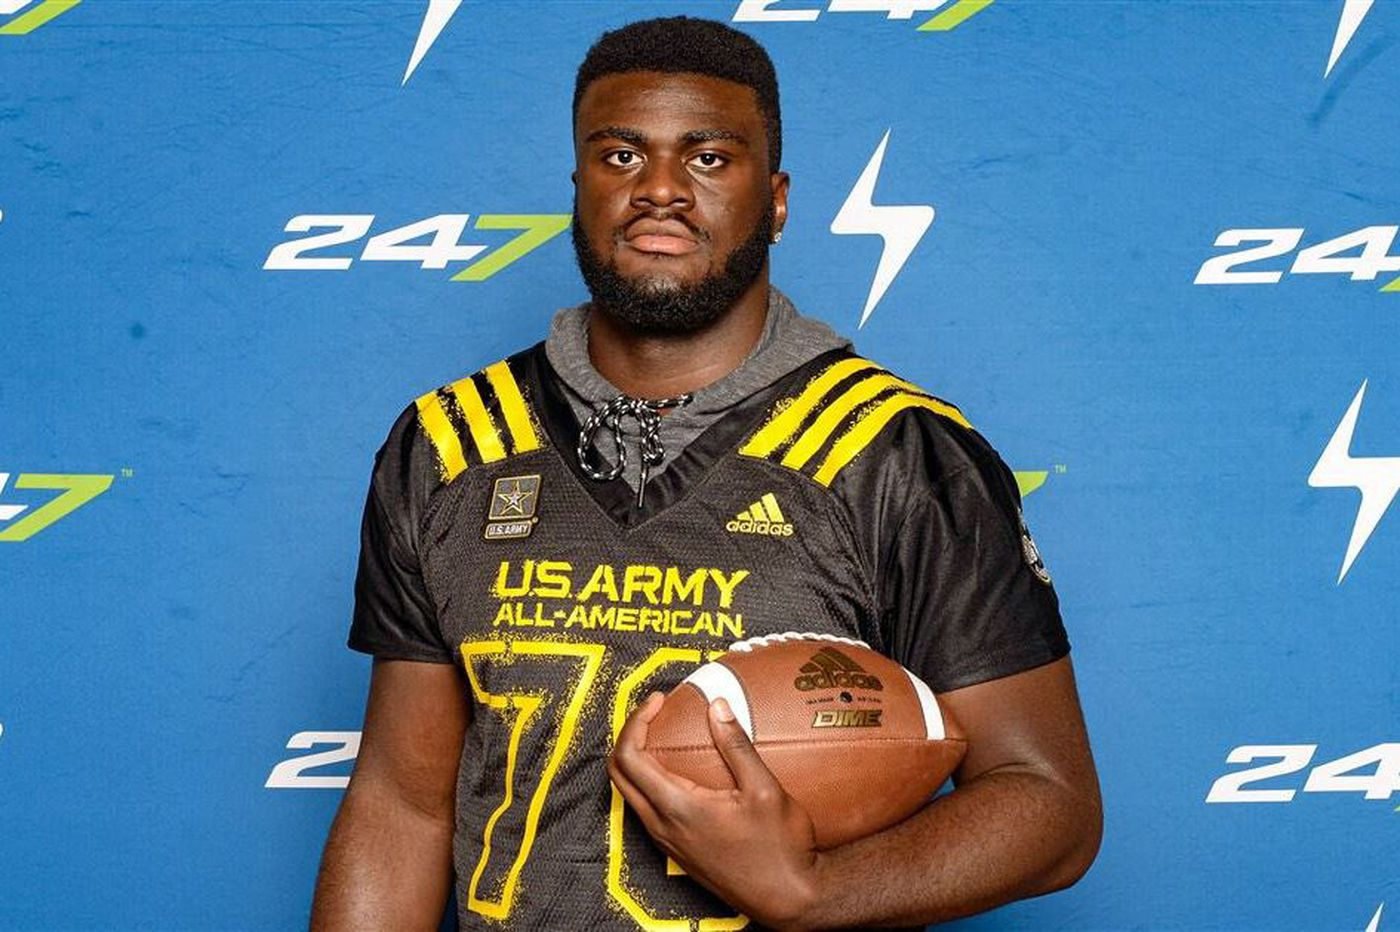 Penn State football recruit Nana Asiedu quits due to heart condition